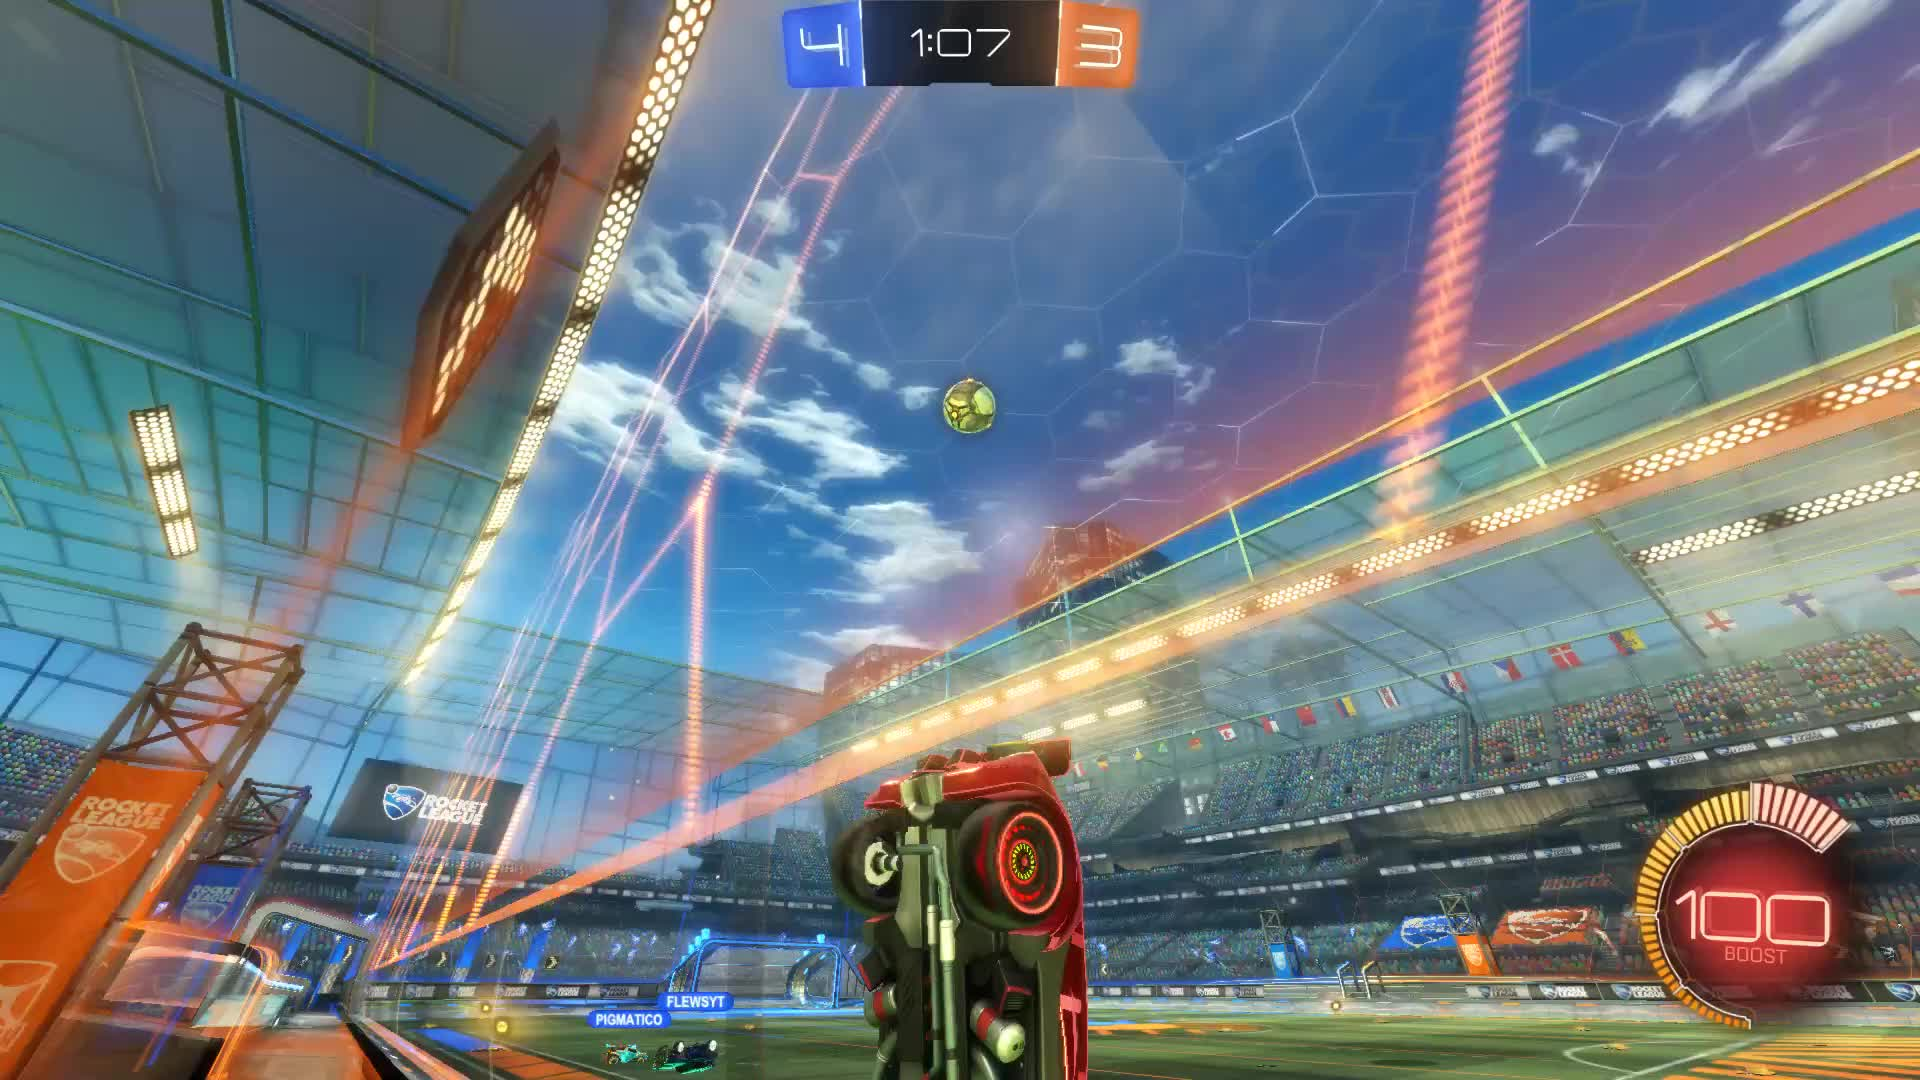 Gif Your Game, GifYourGame, Goal, Rocket League, RocketLeague, Sum Ting Wong, Goal 8: Sum Ting Wong GIFs